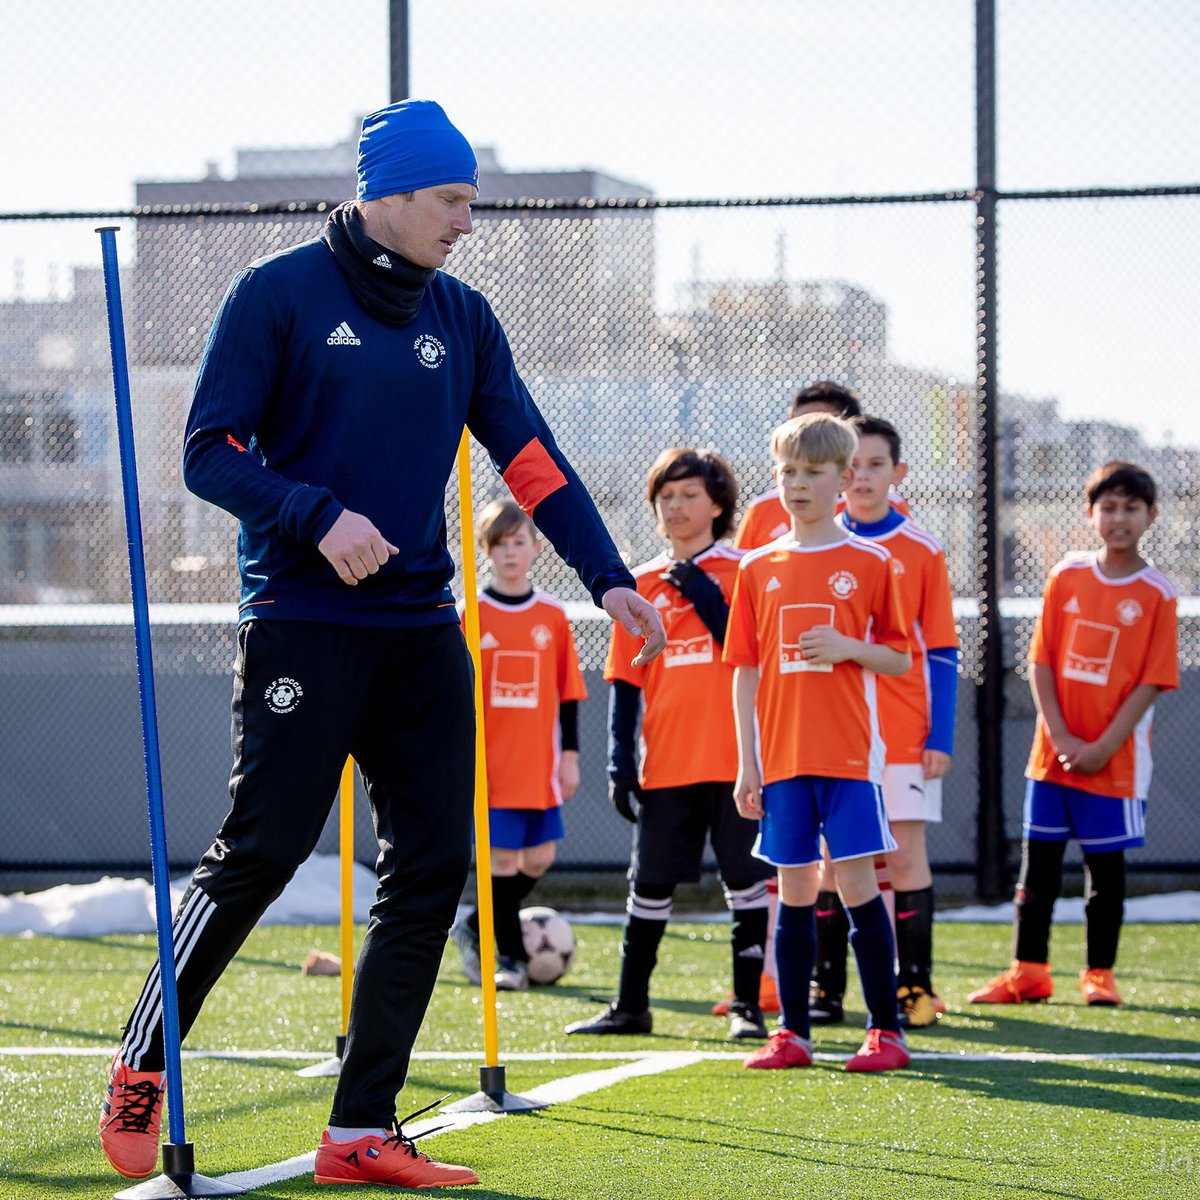 It's just about hours and hours of training and big commitment #volfsocceracademy #soccer #socceracademy #soccerskills #soccertime #vancouver #vancouverbc #canada #barcelona #milano #roma #prague #mlspic.twitter.com/QnTtSrBTpi